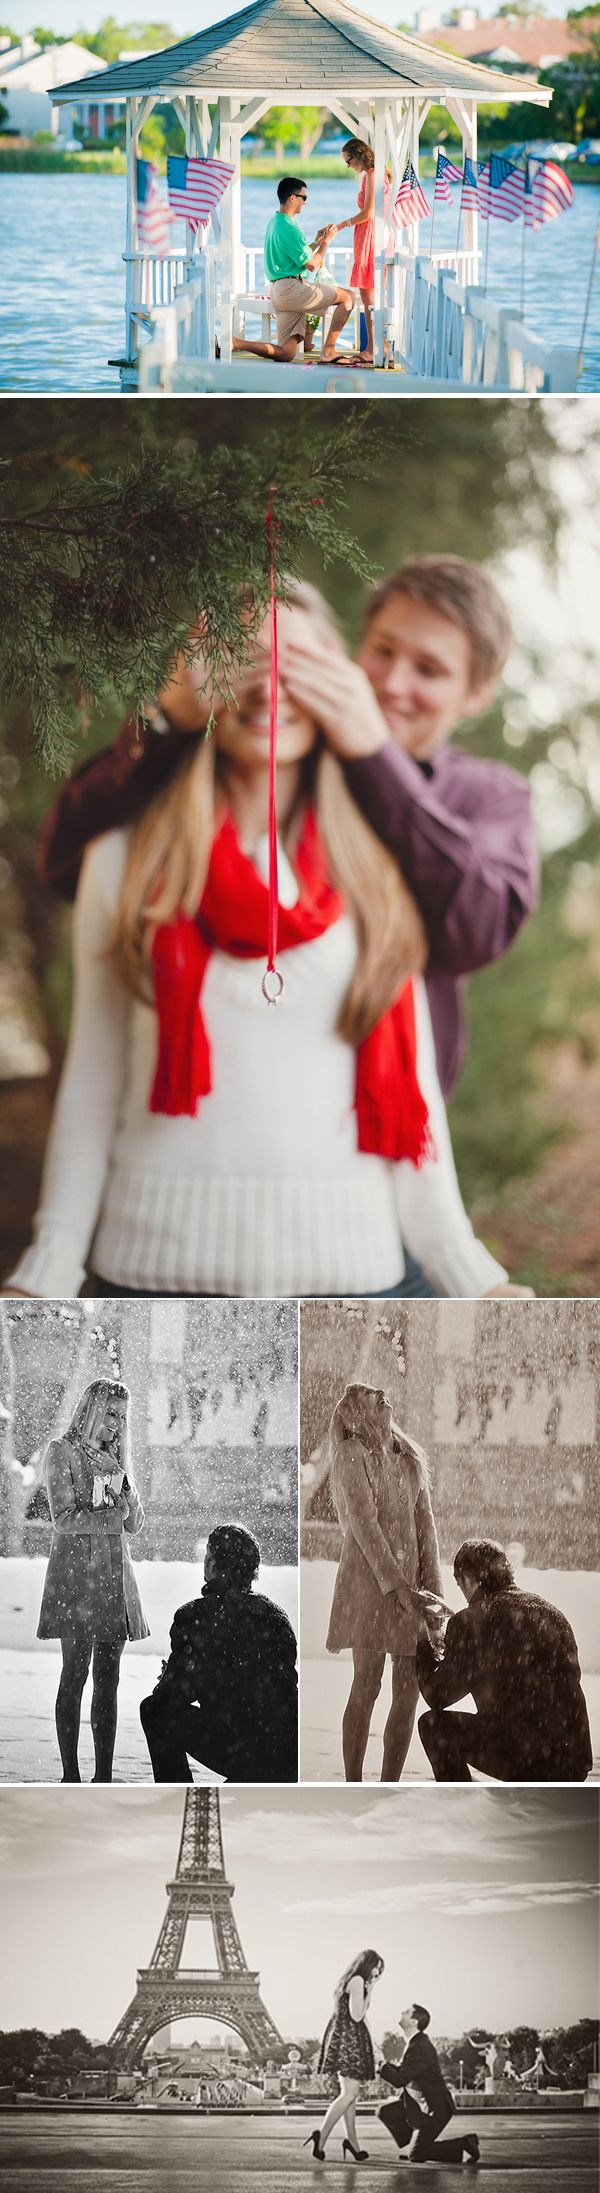 Secret photographers during the proposal! I love this!